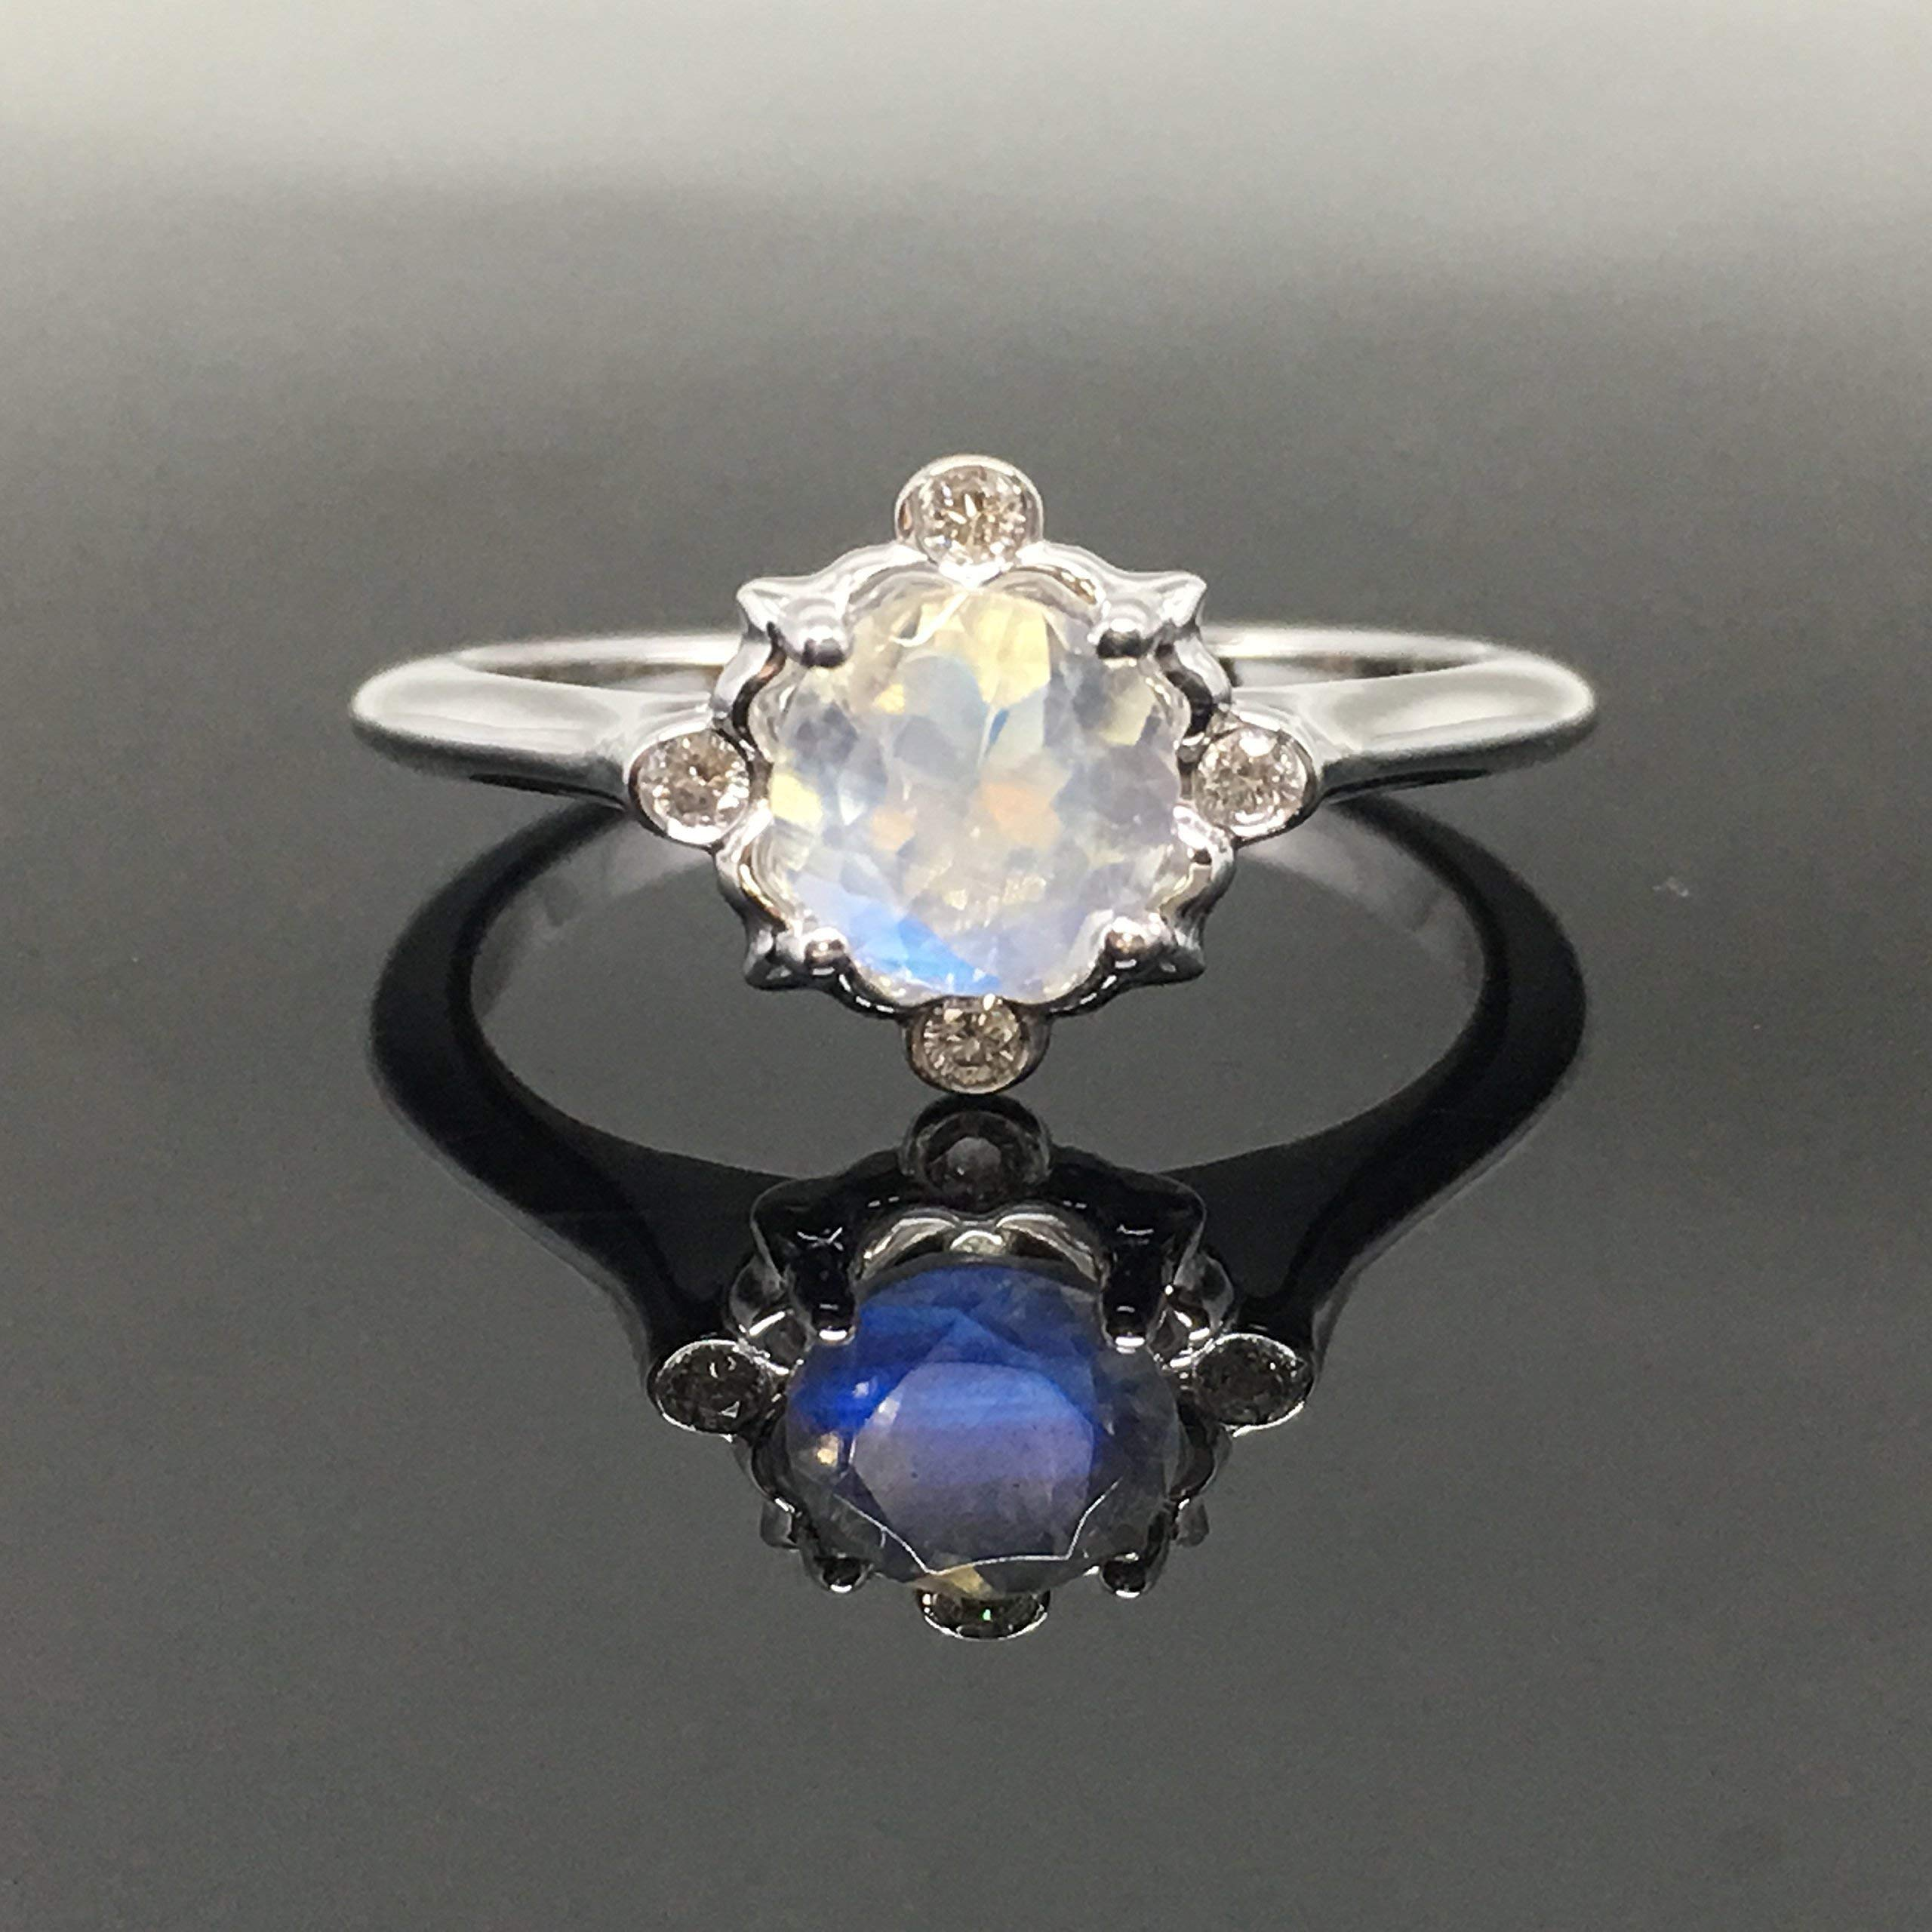 Moonstone Ring Engagement Wedding Anniversary Sterling Silver